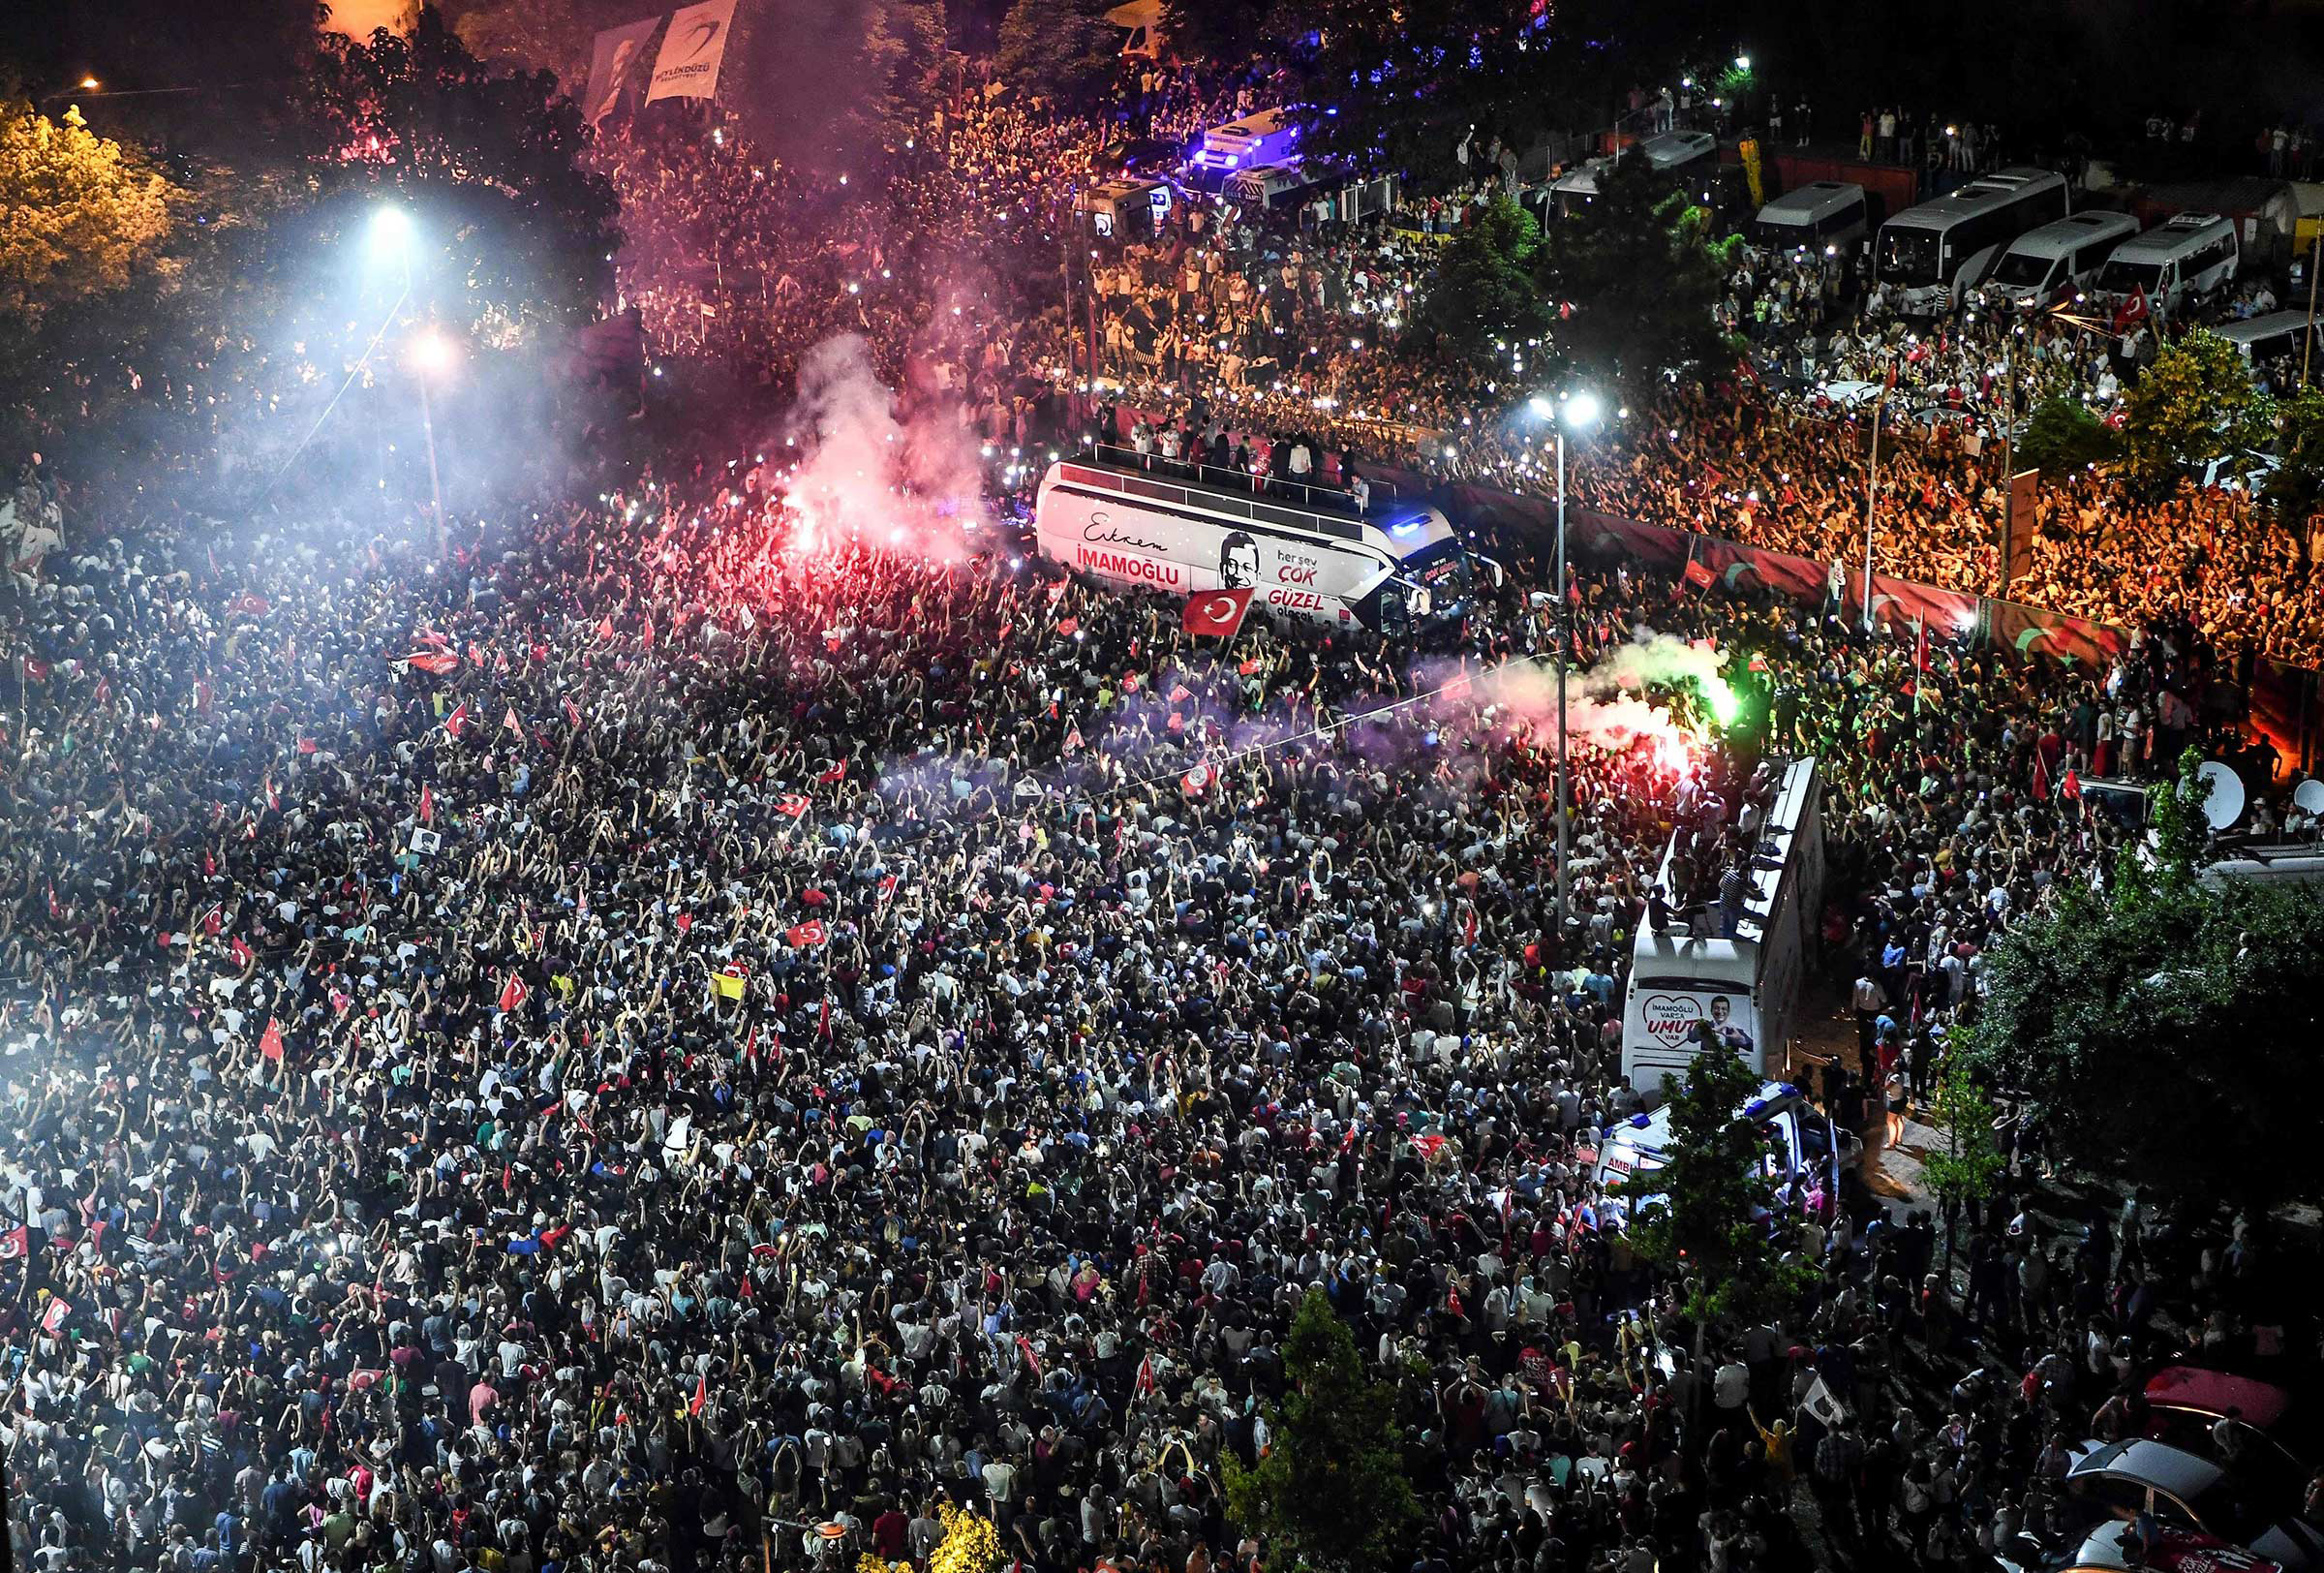 Thousands gathered to celebrate after the opposition candidate, Ekrem Imamoglu, emerged as winner of the repeat mayoral election in Istanbul on June 23, 2019.